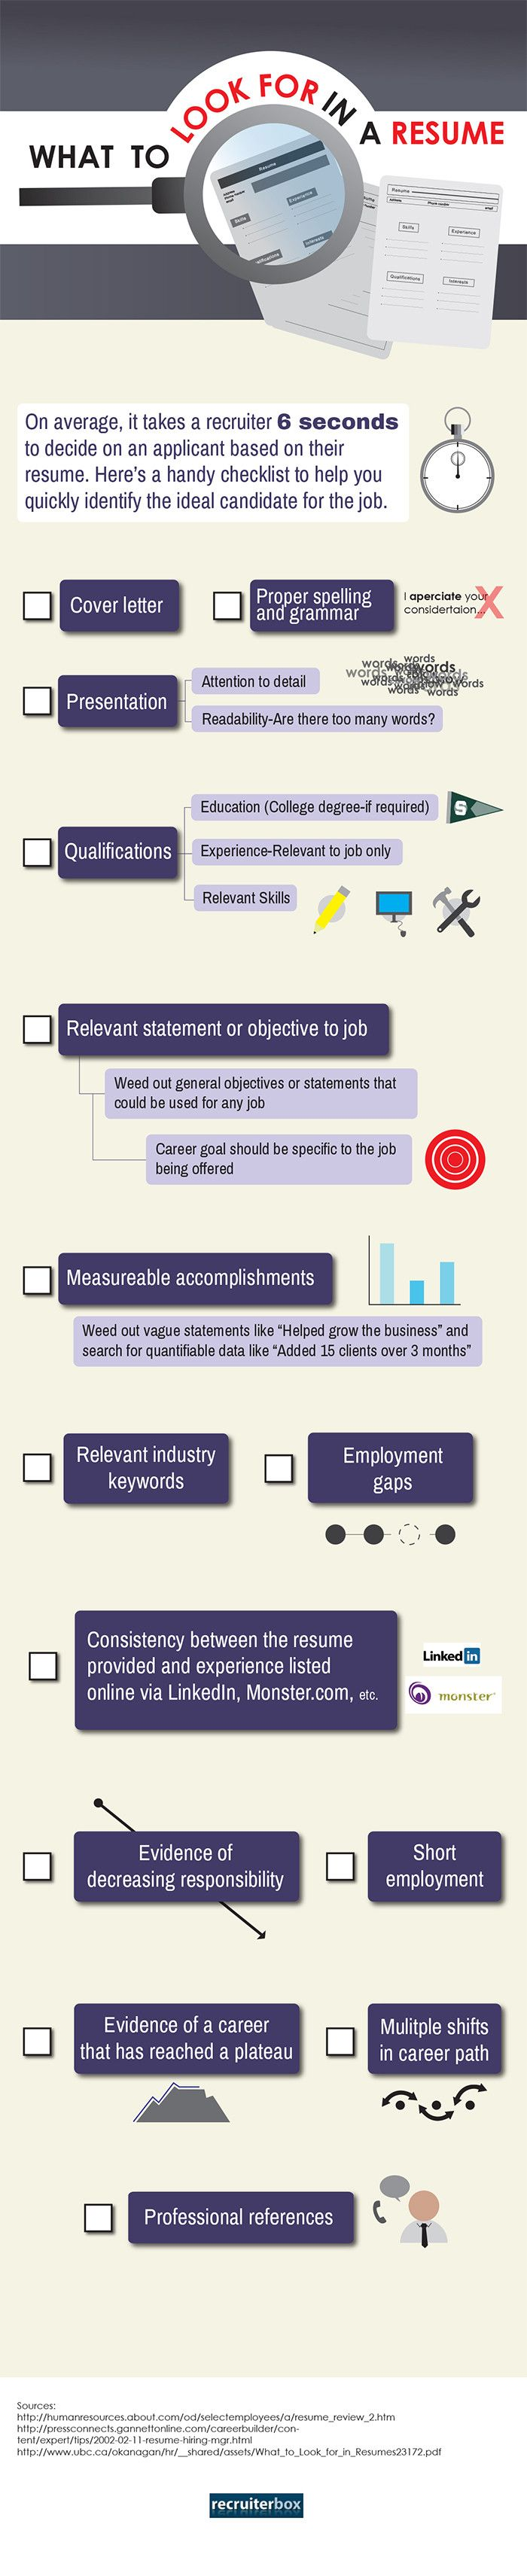 Great What To Look For In A Resume #infographic #Resume #Career #Interview